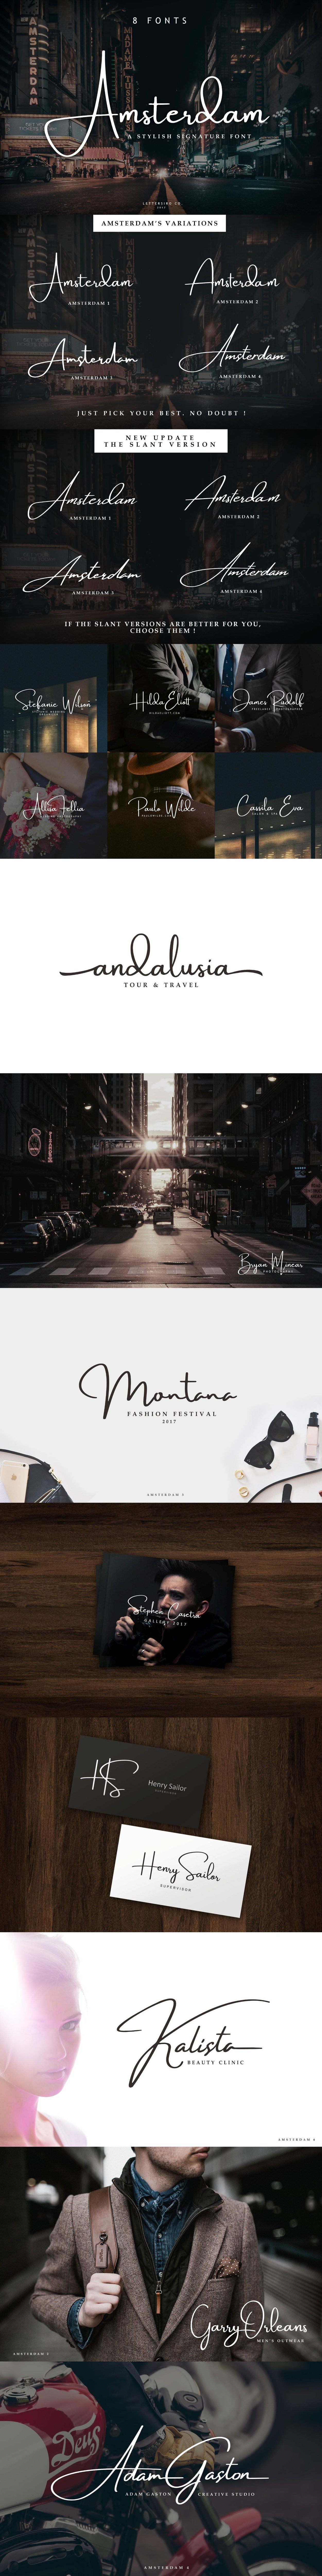 Amsterdam • 8 Elegant Fonts | Fonts, Business cards and Classy fonts